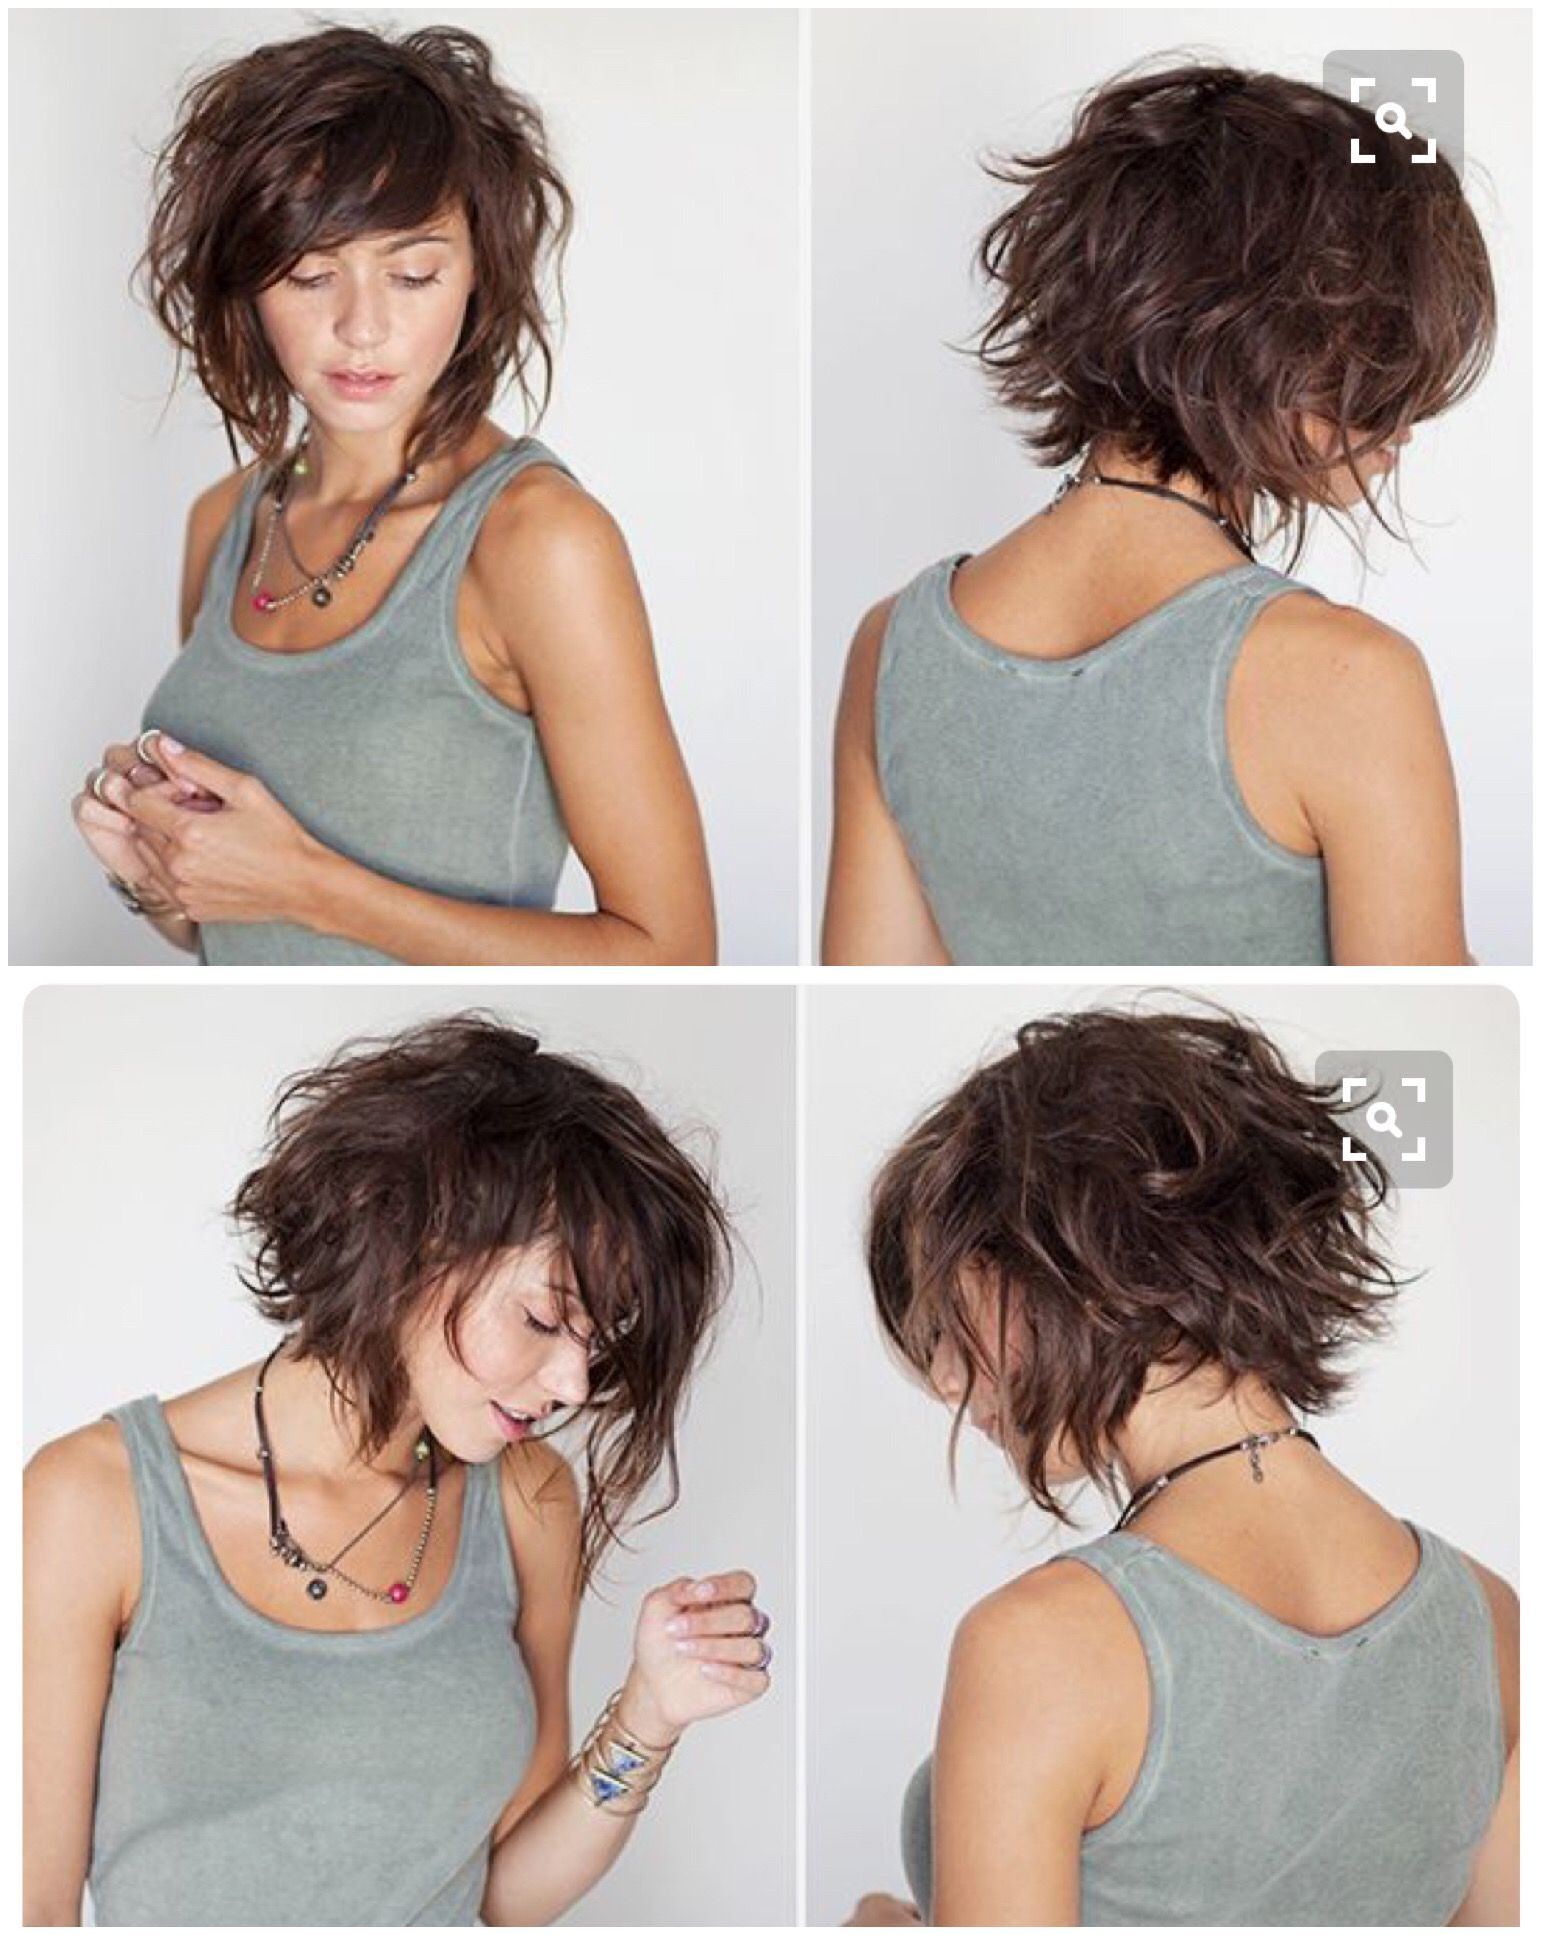 35 Flattering Bob Haircuts for Fine Hair (Updated 2021) 6a976bae846ce486191dded024ca1217